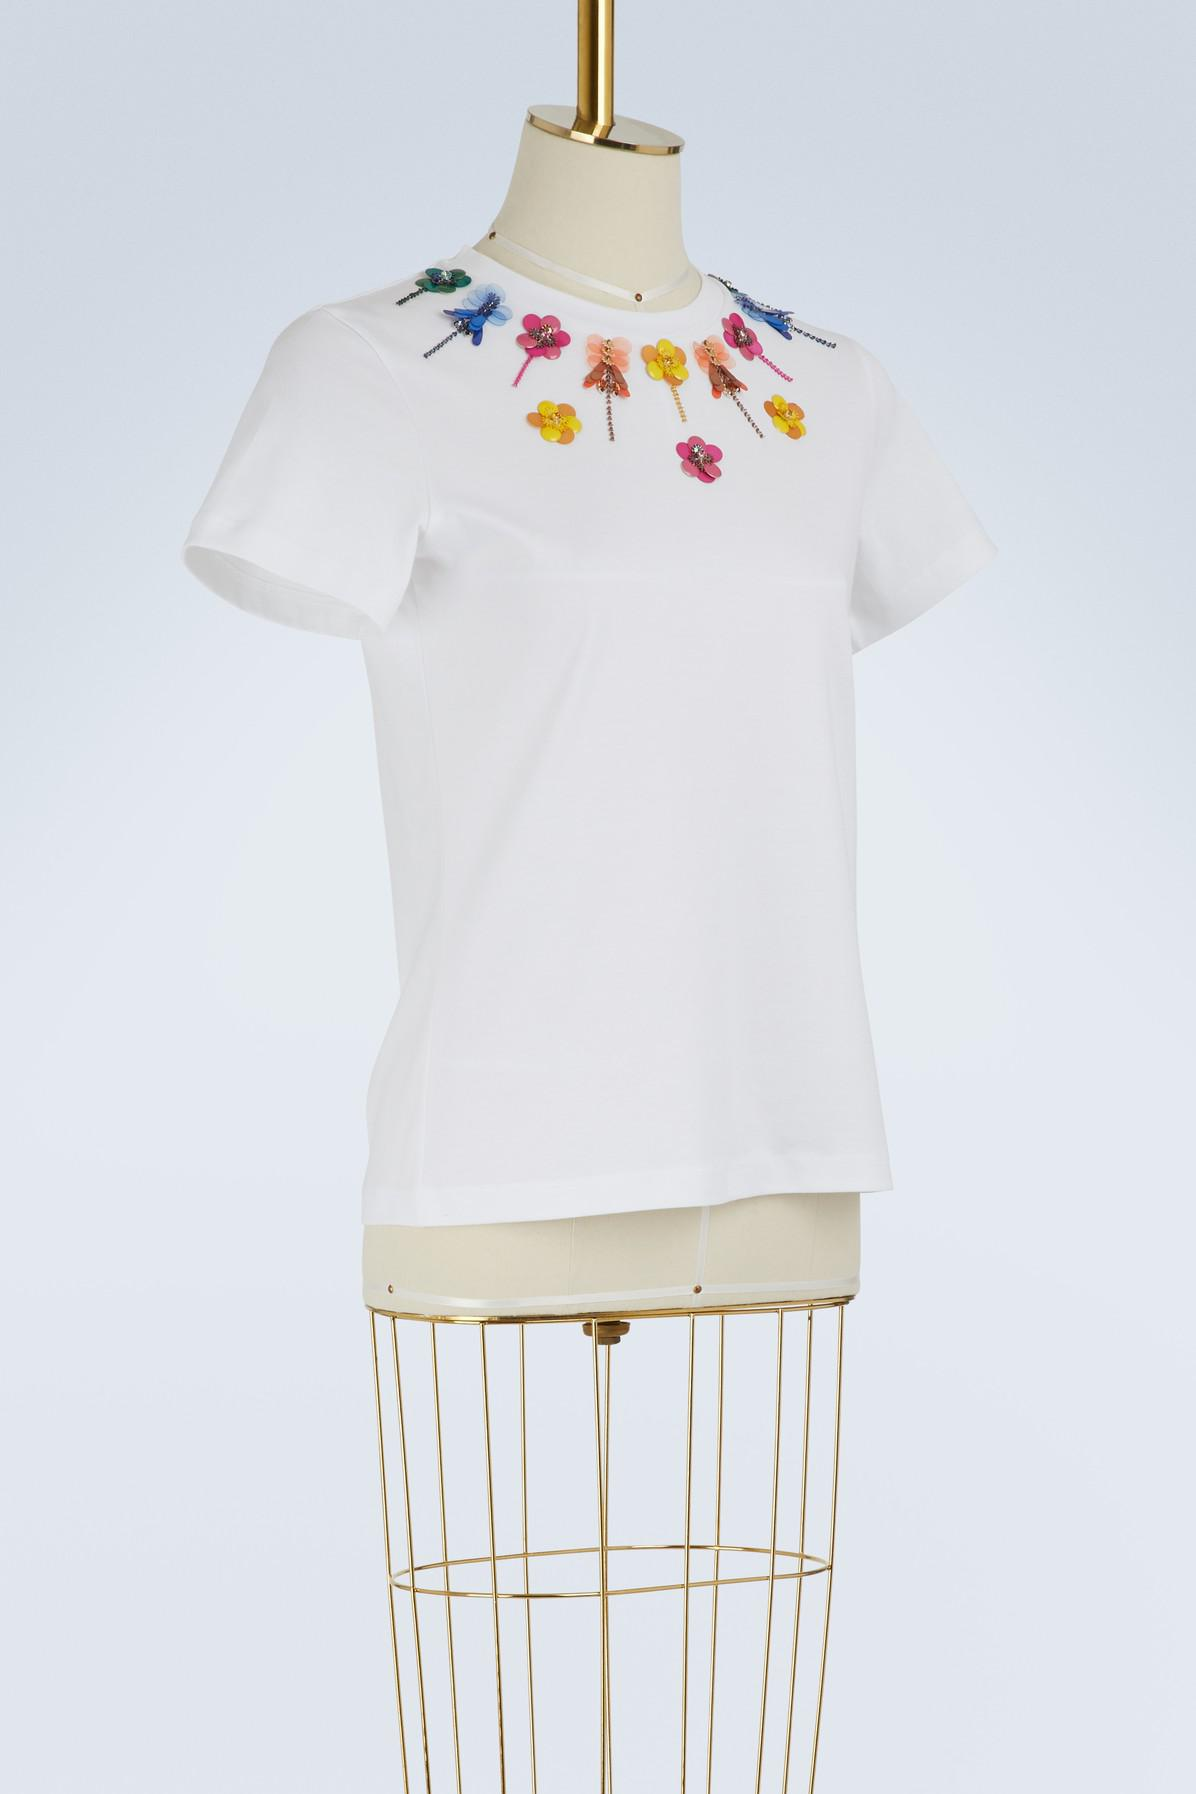 Best Seller For Sale Shop Cheap Price Iven embroidered t-shirt Mary Katrantzou 2FBMnWG